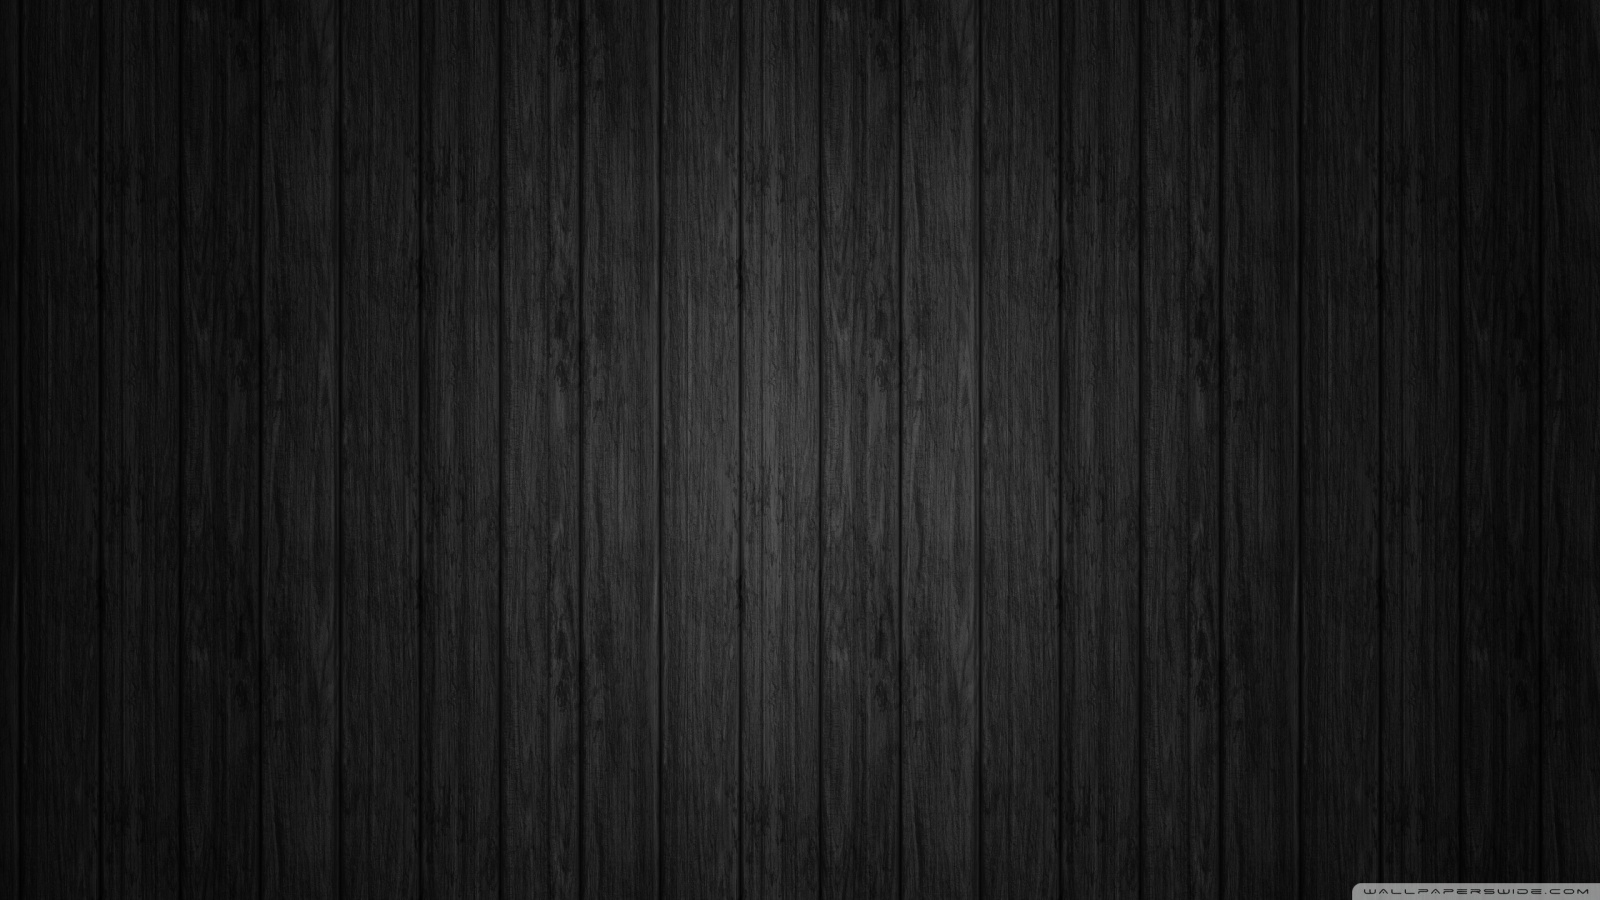 Dark Woods Wallpaper HD